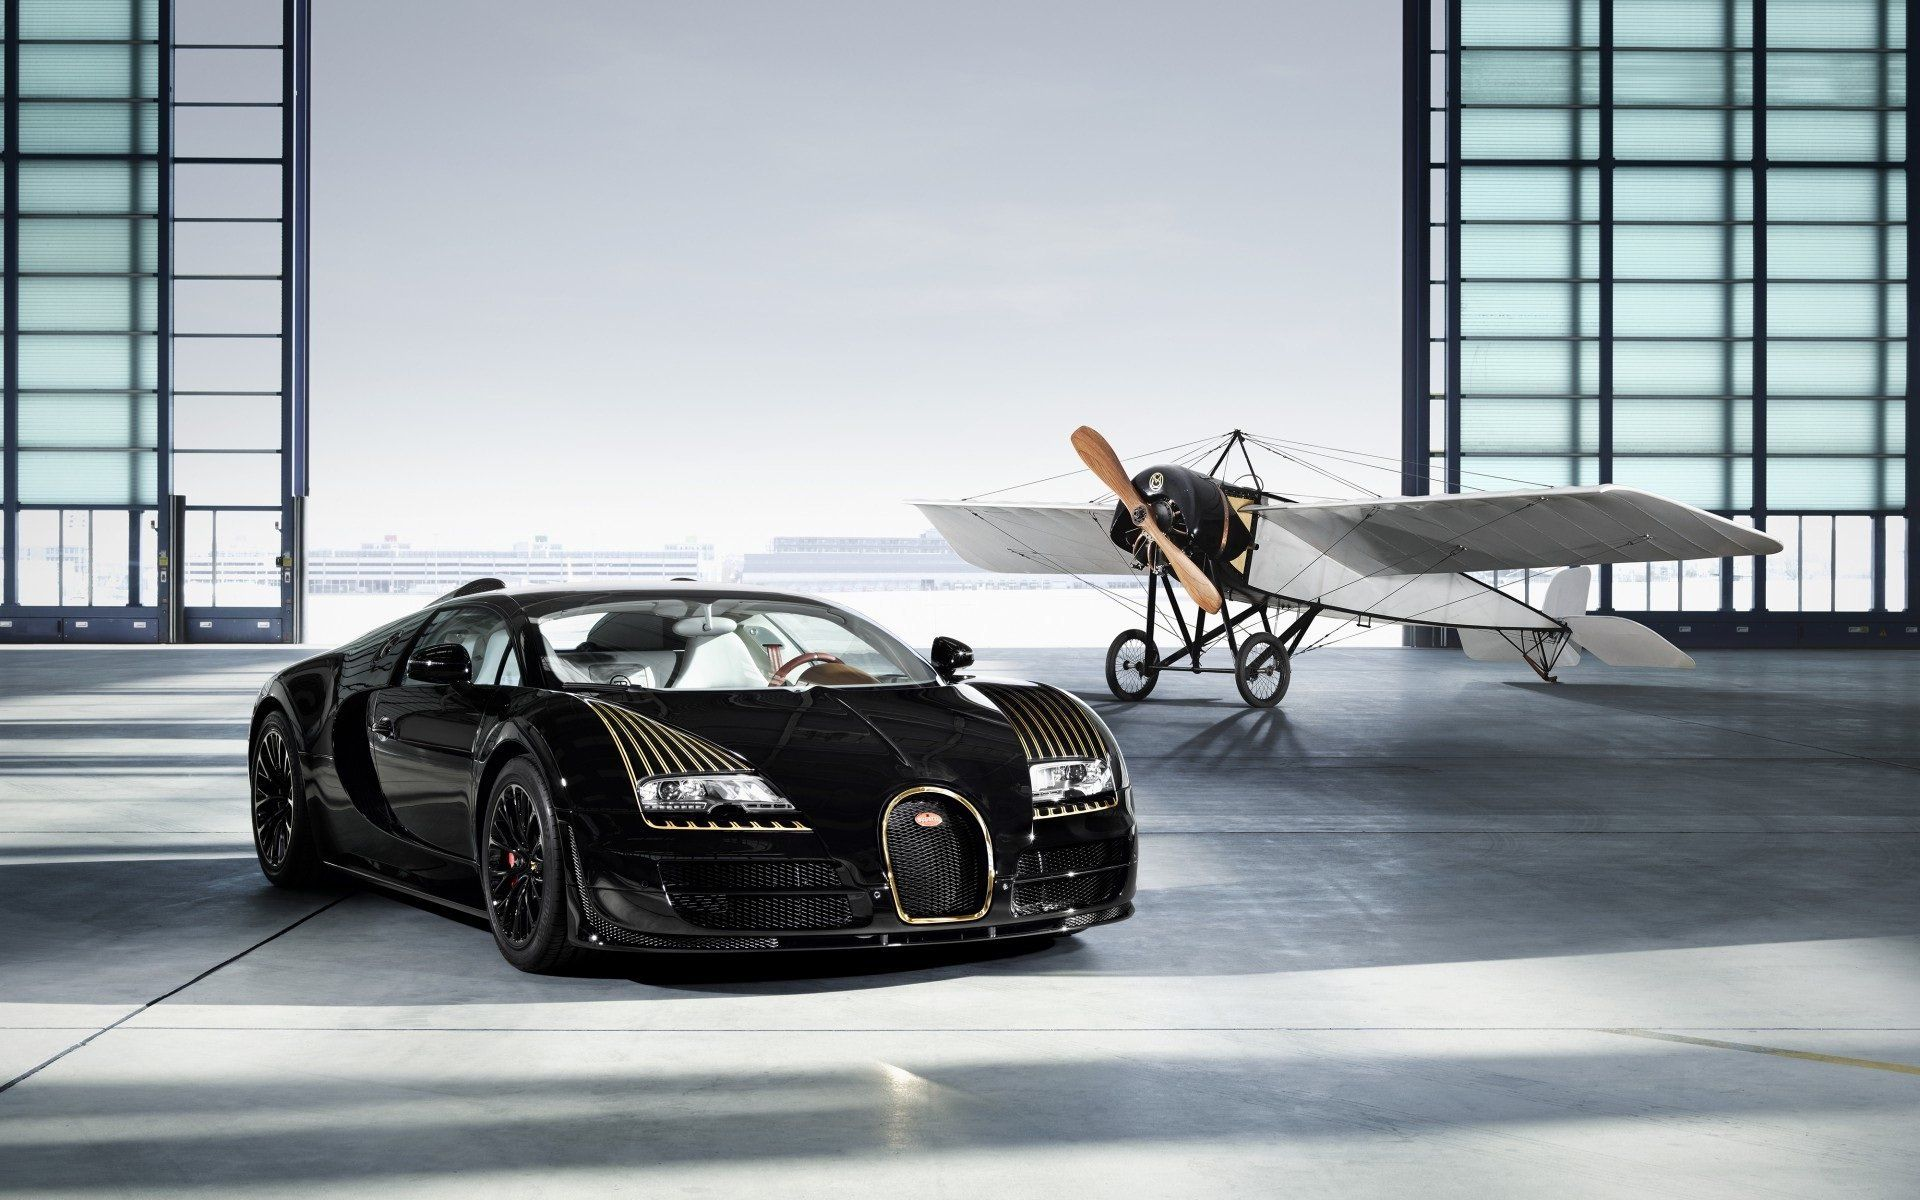 Bugatti Veyron Black Most Awesome Car Wallpaper Bugatti Veyron